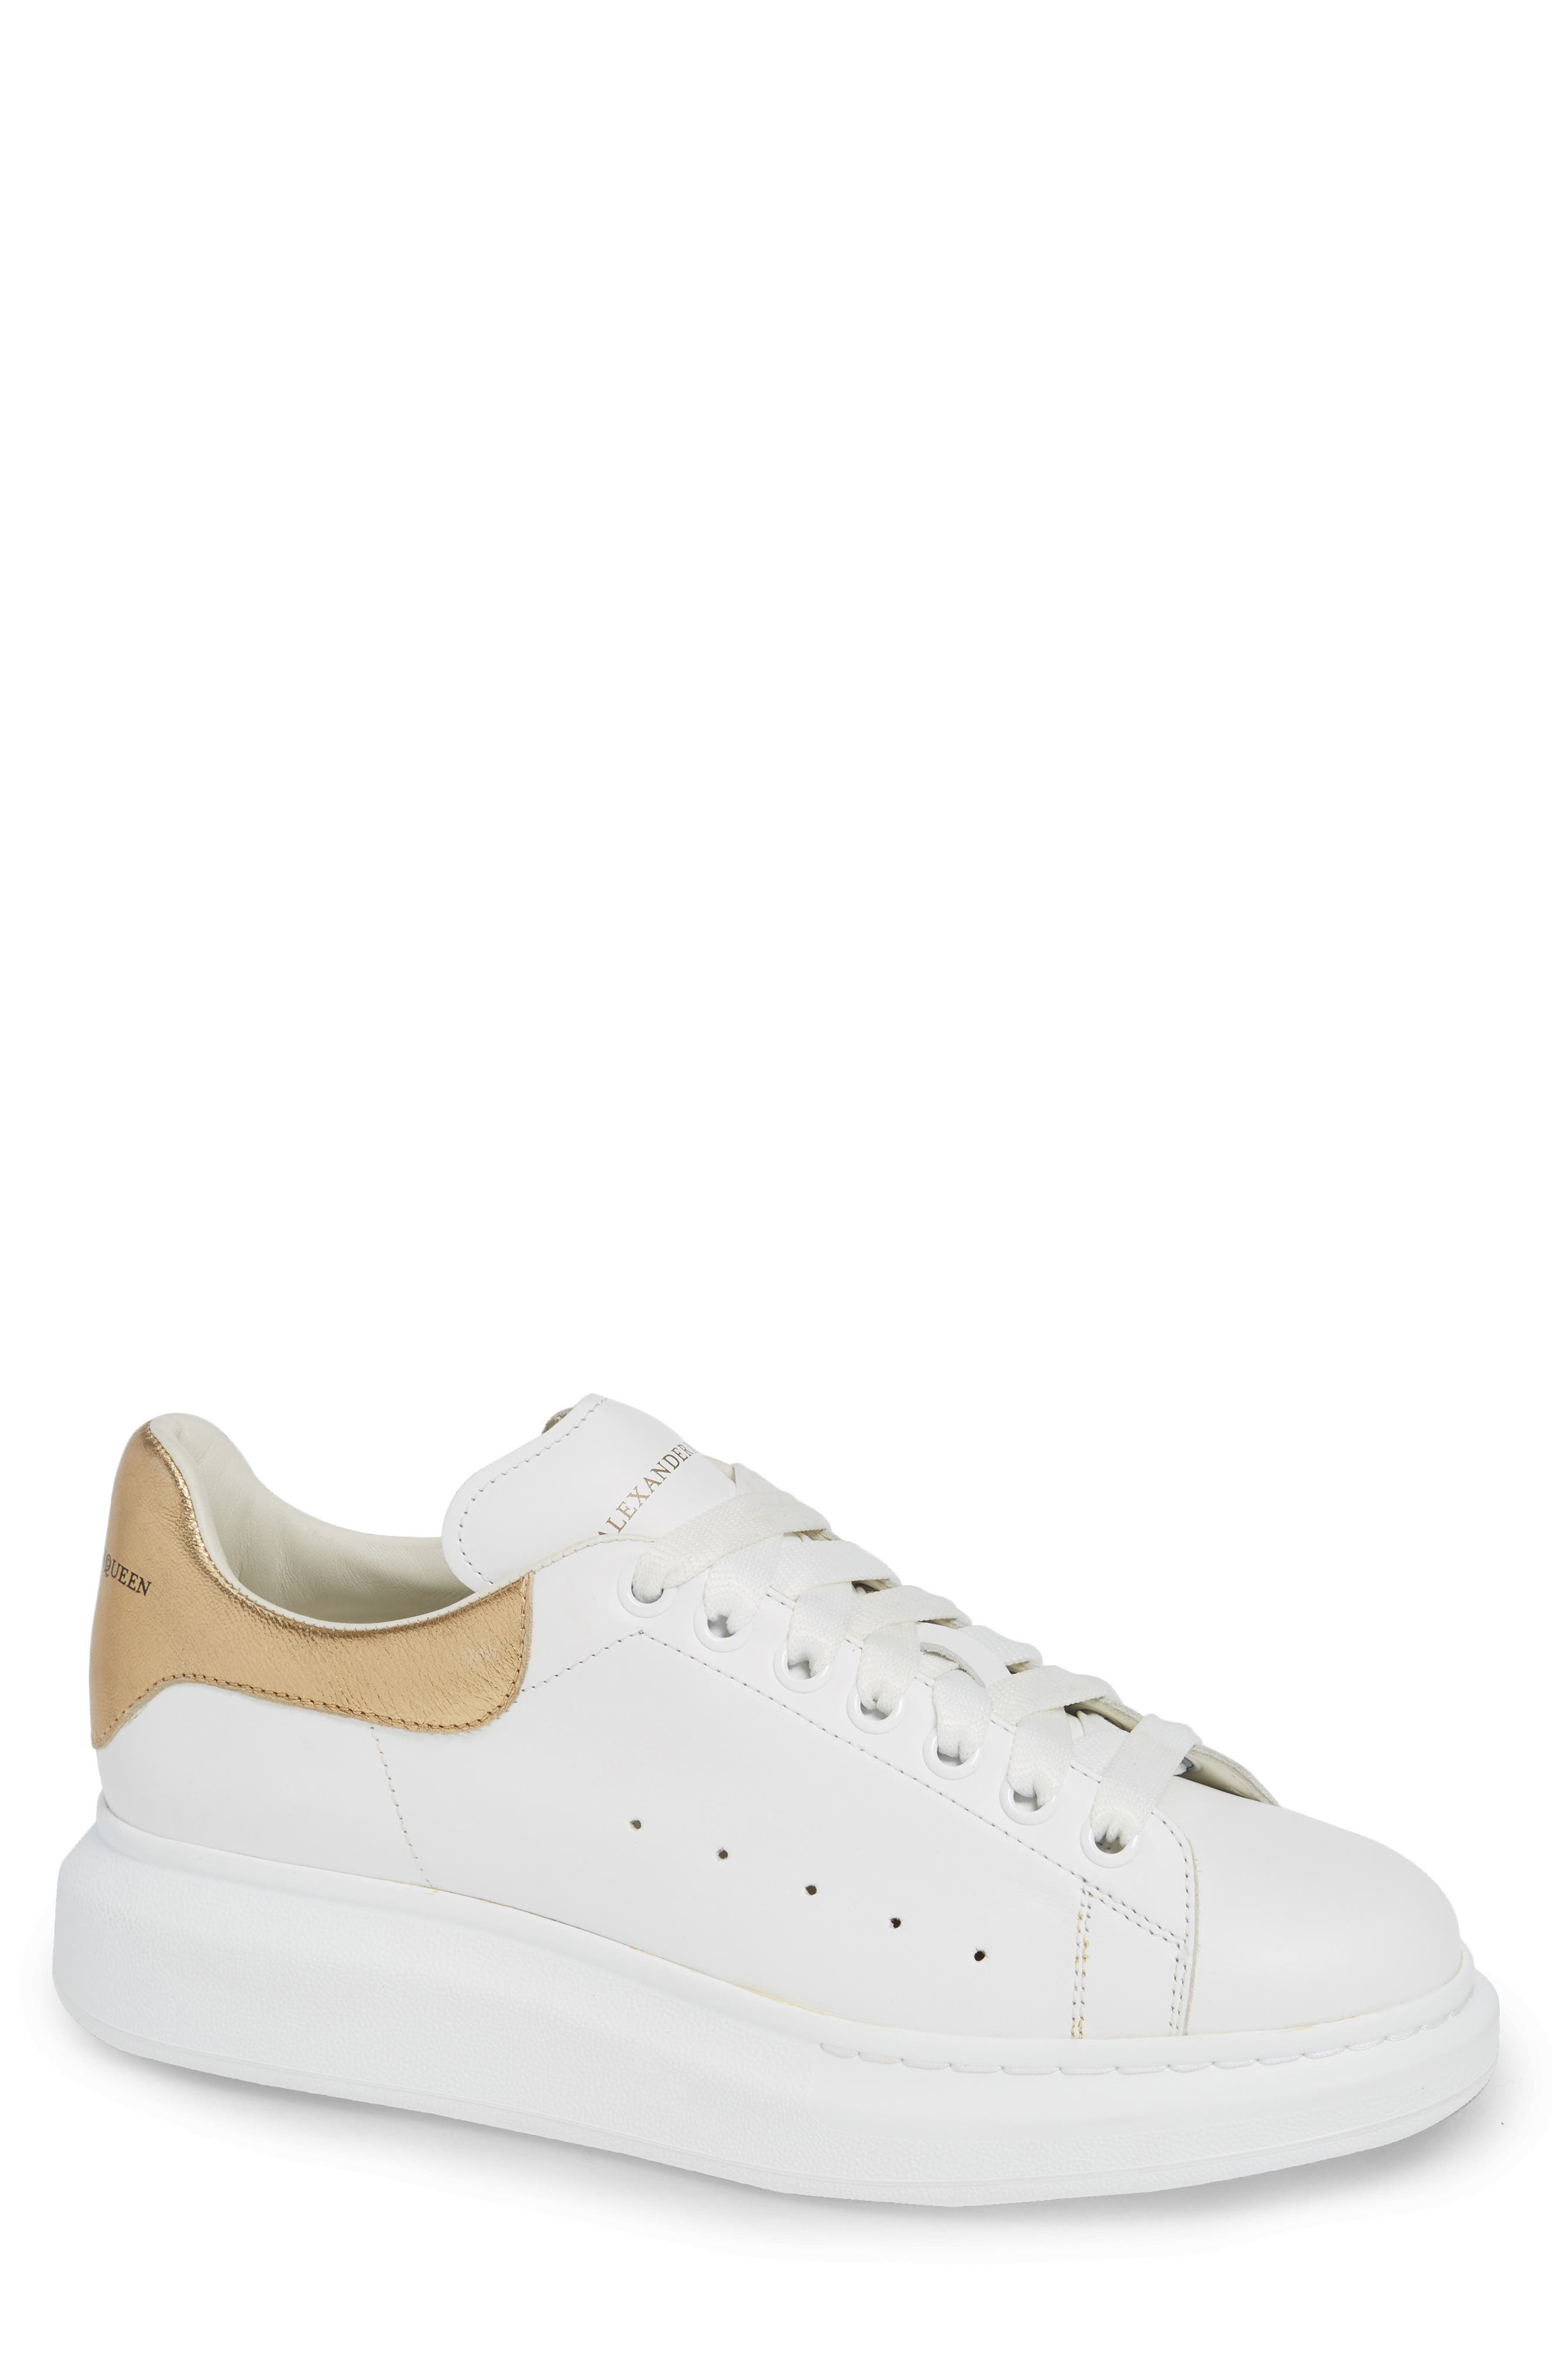 ALEXANDER MCQUEEN Oversized Sneaker, Main, color, WHITE/ GOLD